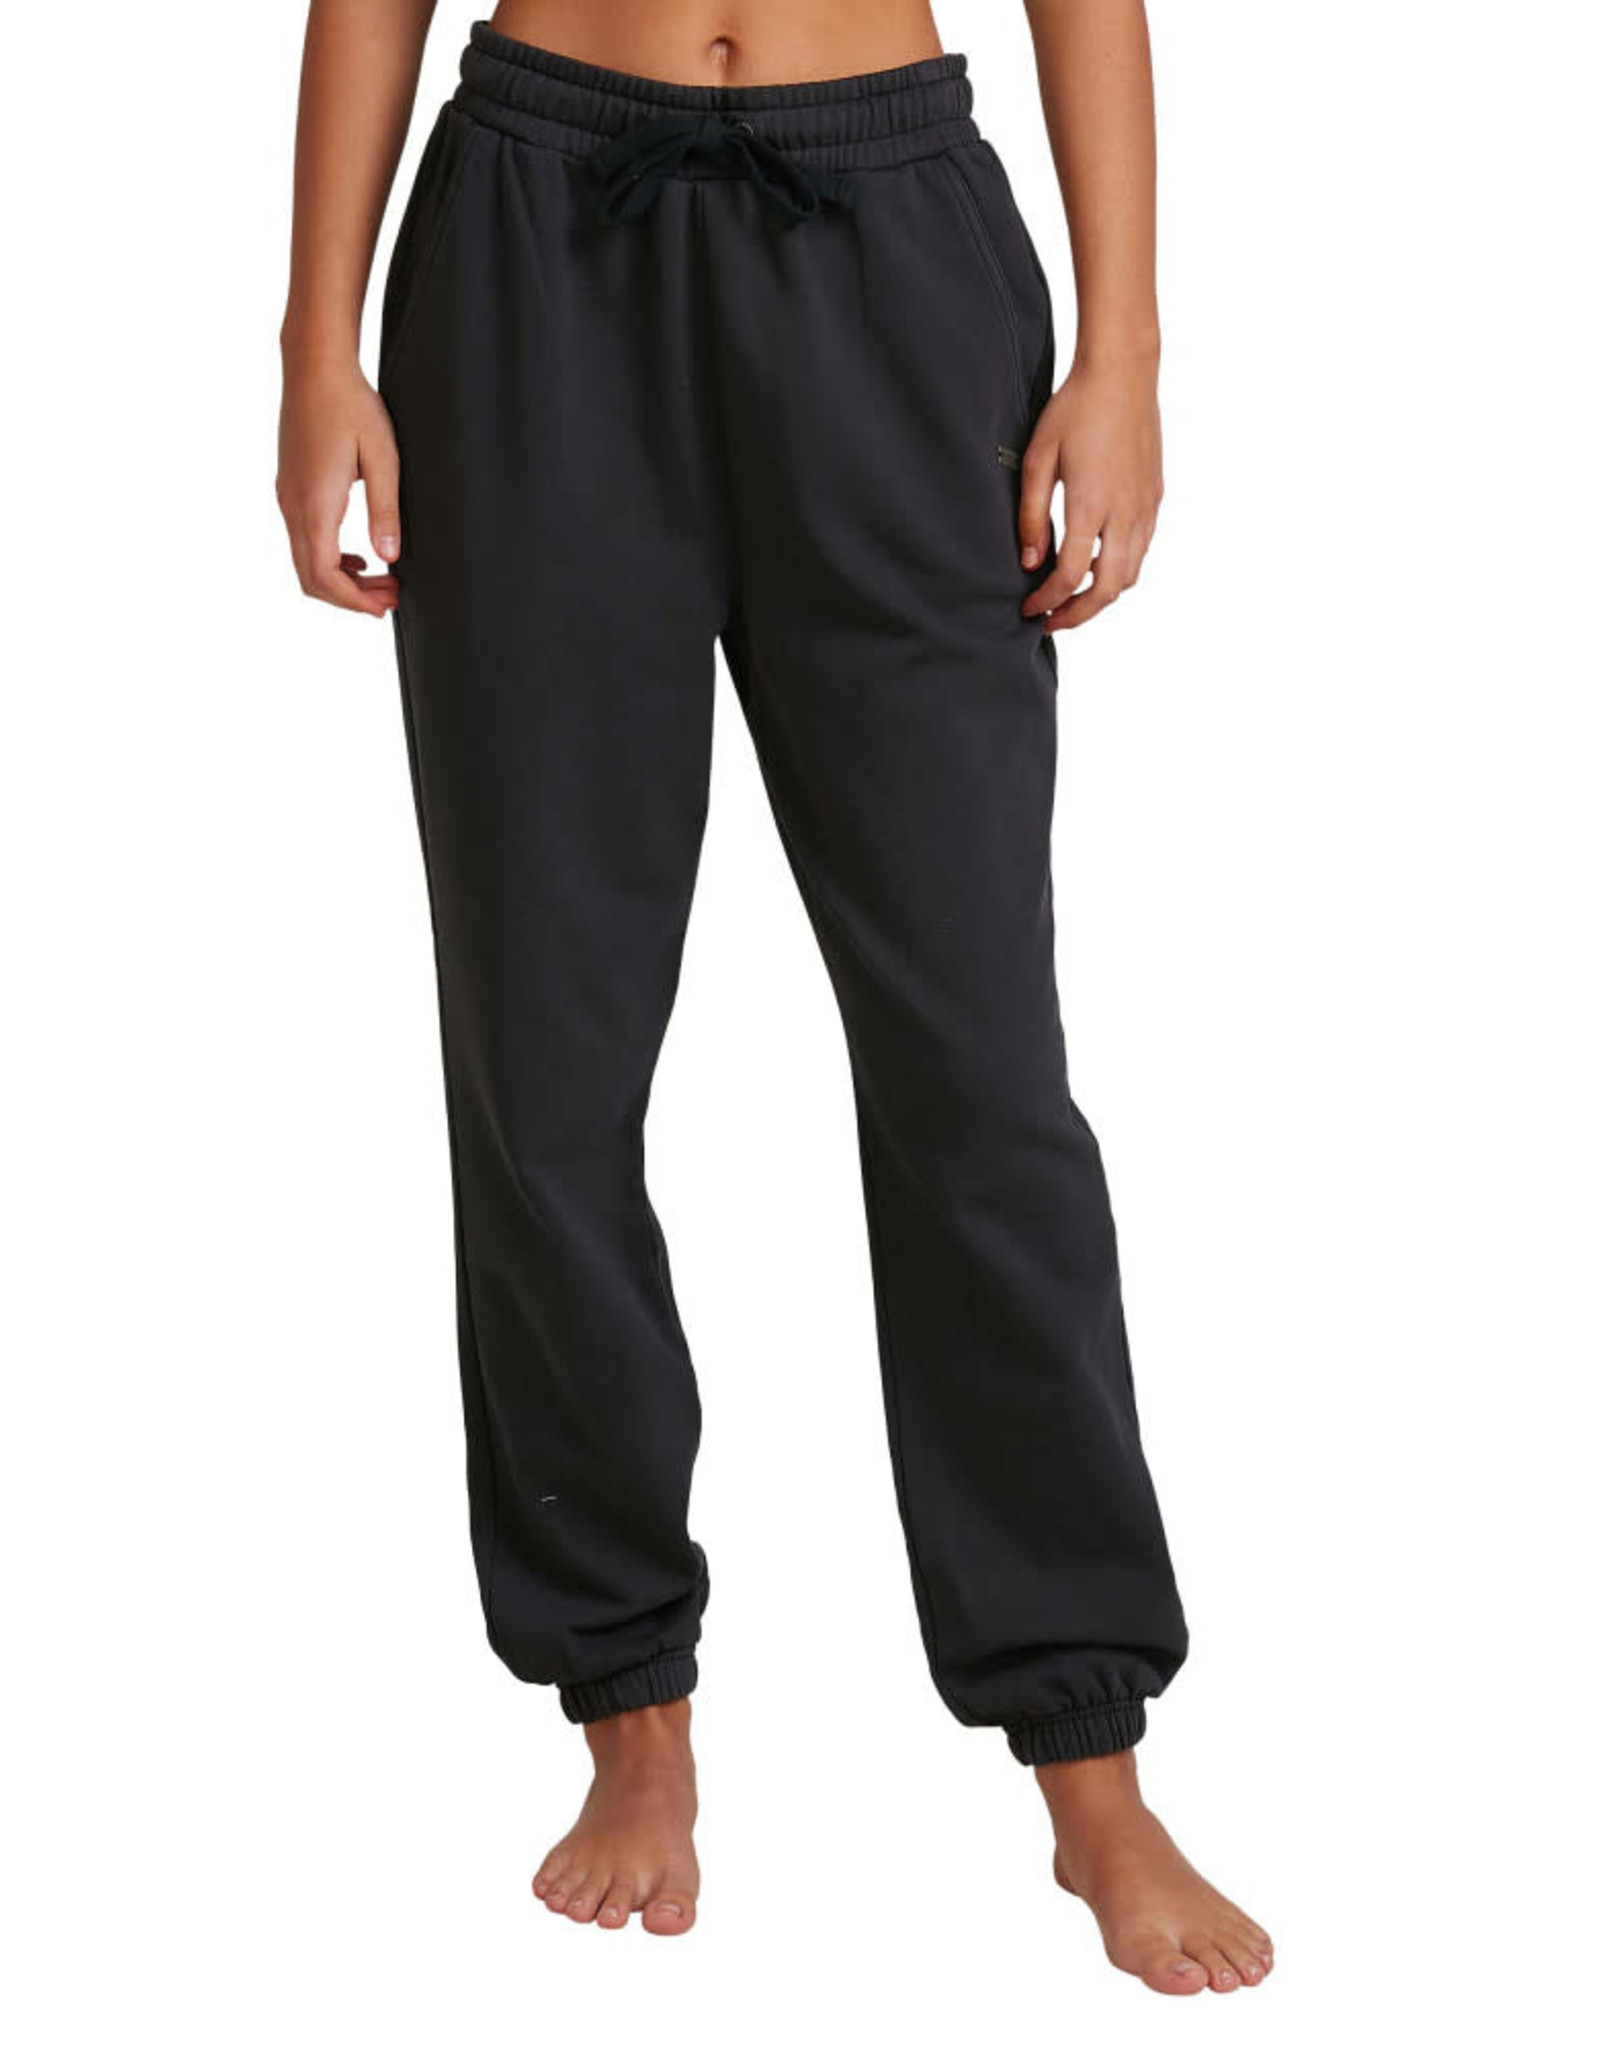 ROXY Only You Track Pant